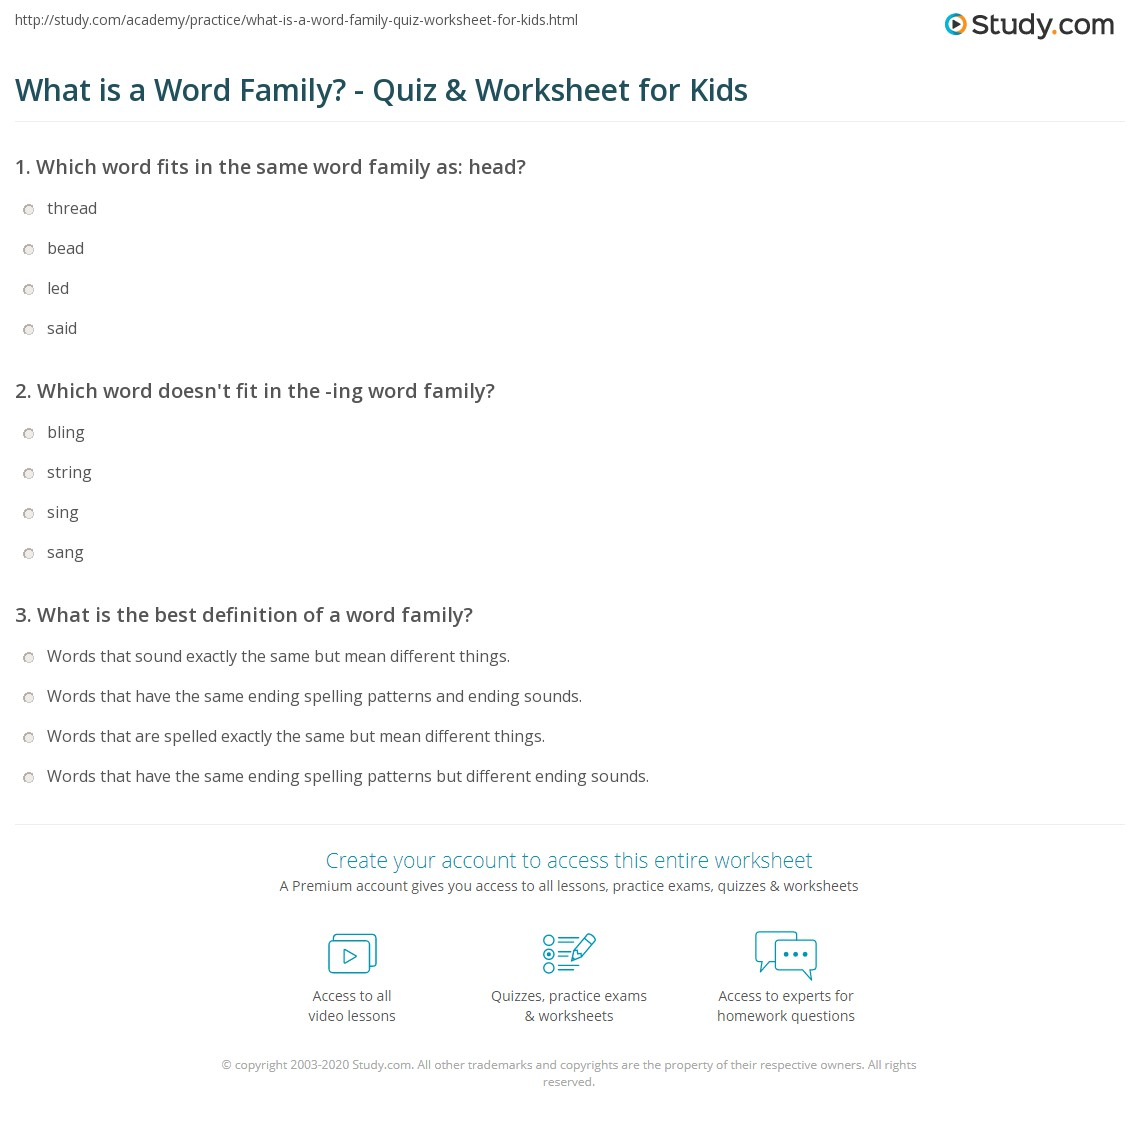 What is a Word Family Quiz & Worksheet for Kids